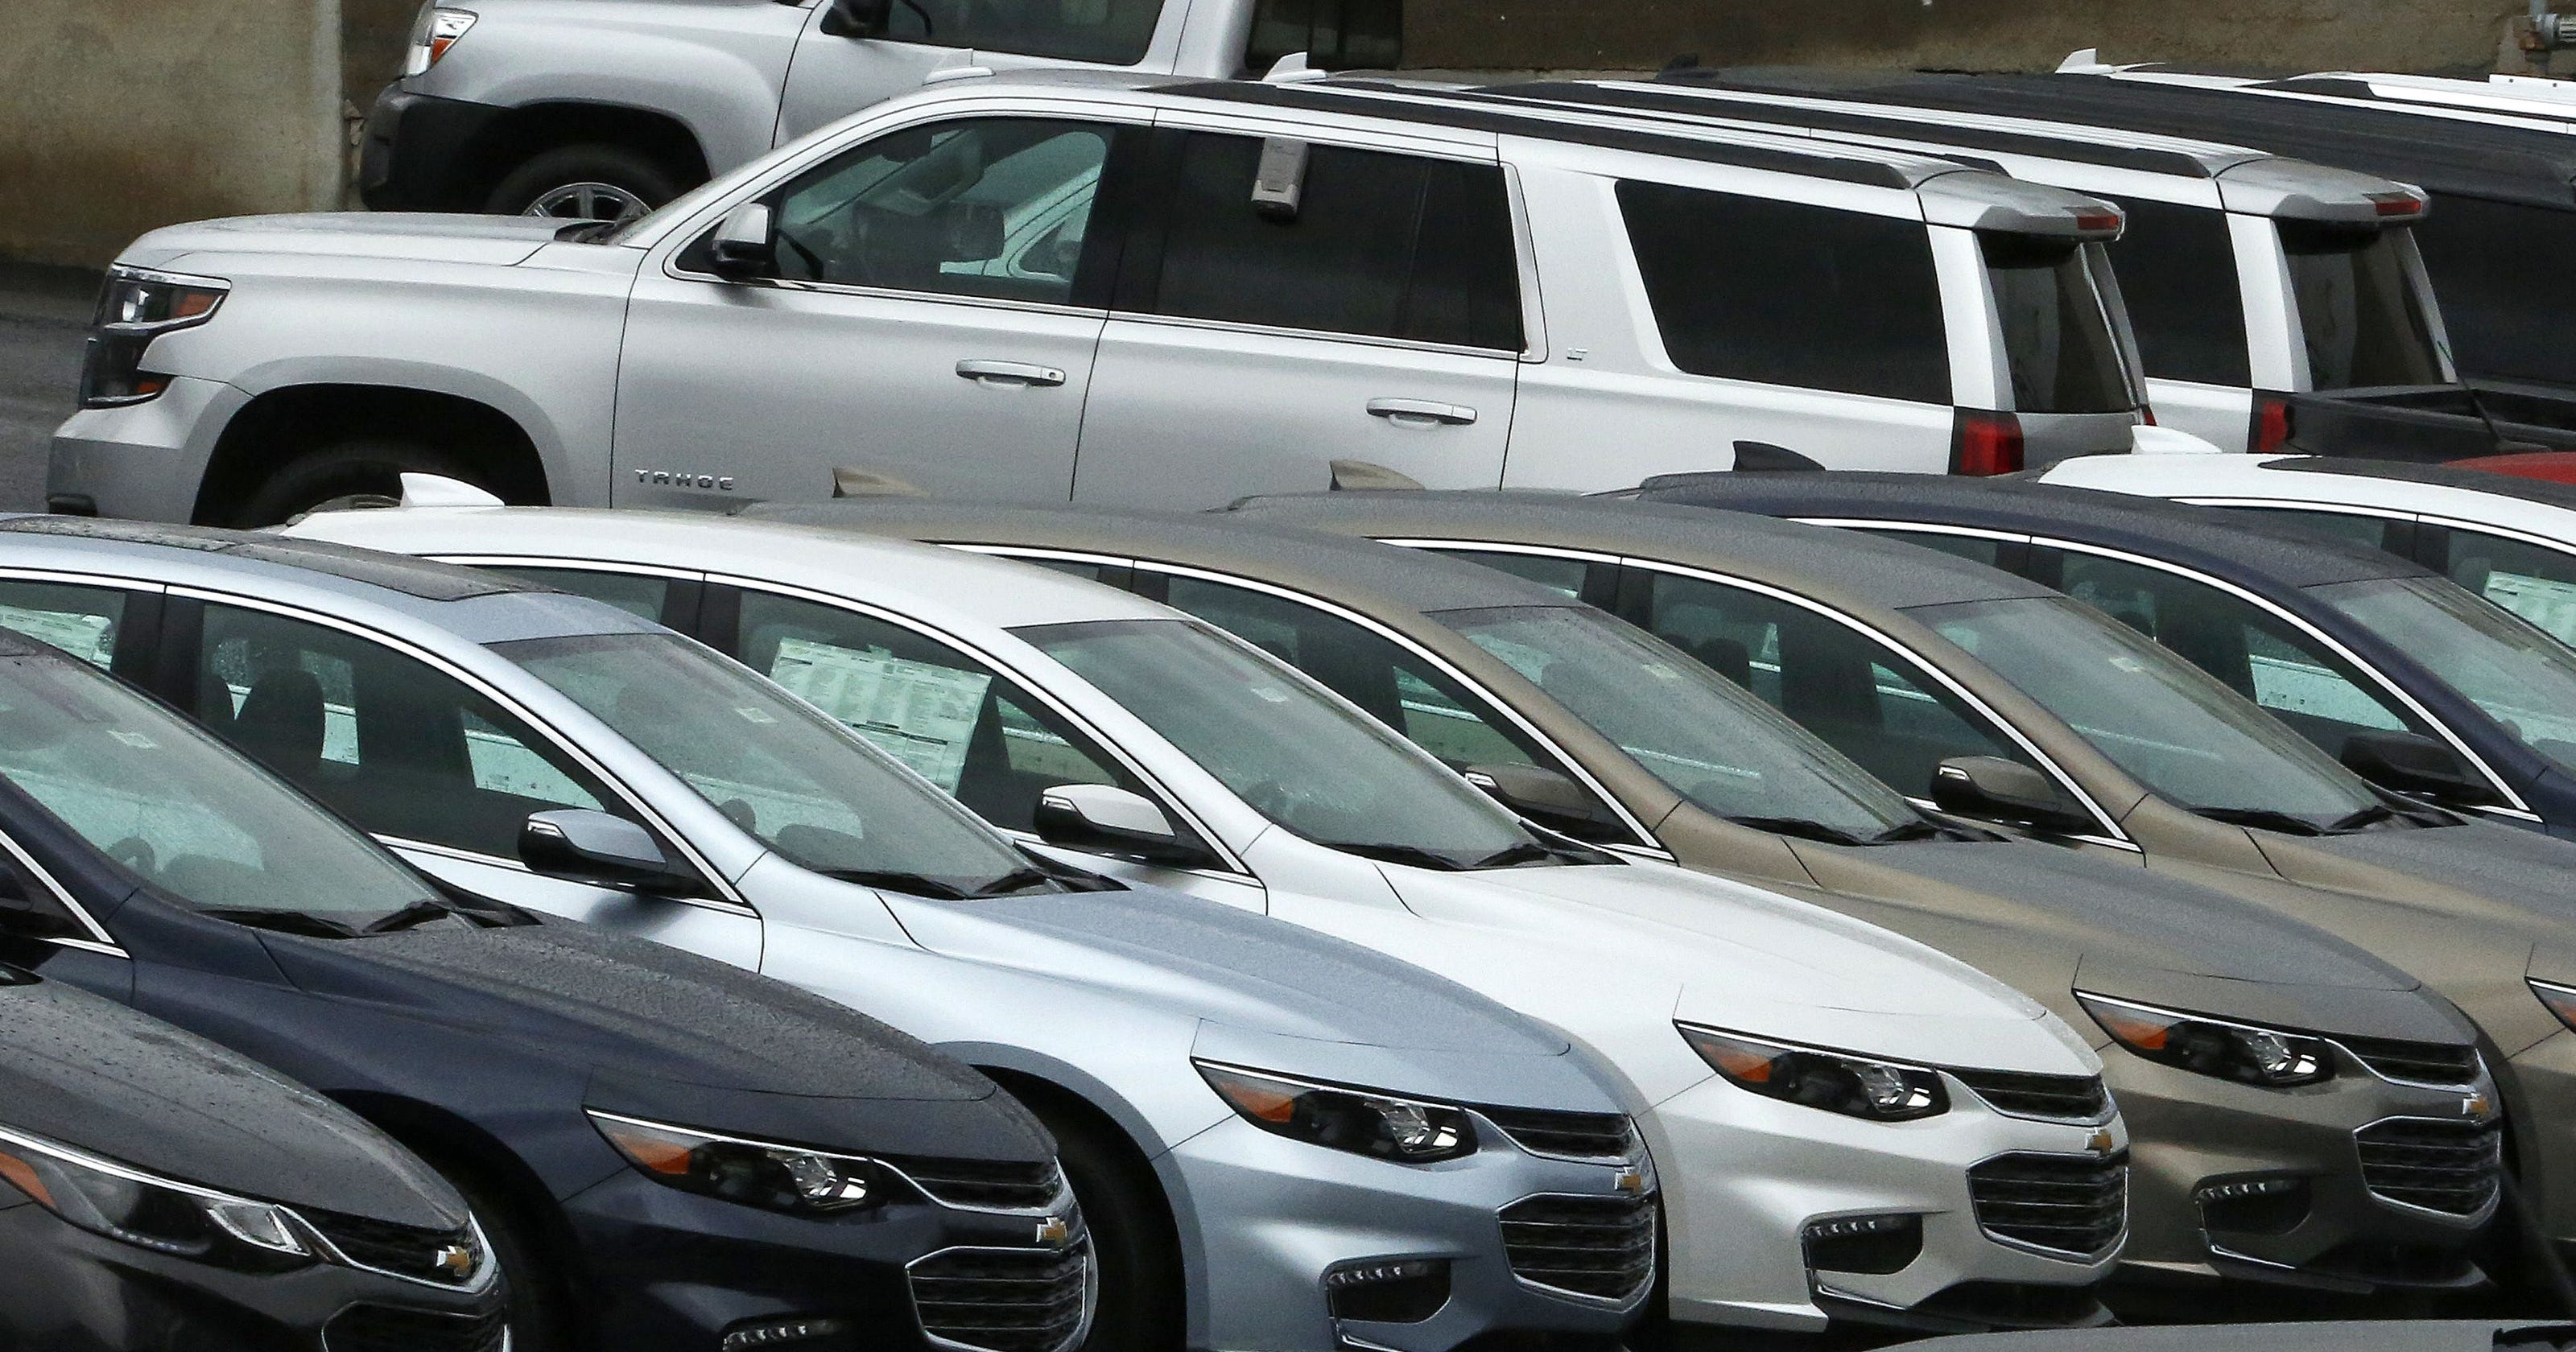 Coronavirus means deals on new, used cars, but trade-ins will suffer